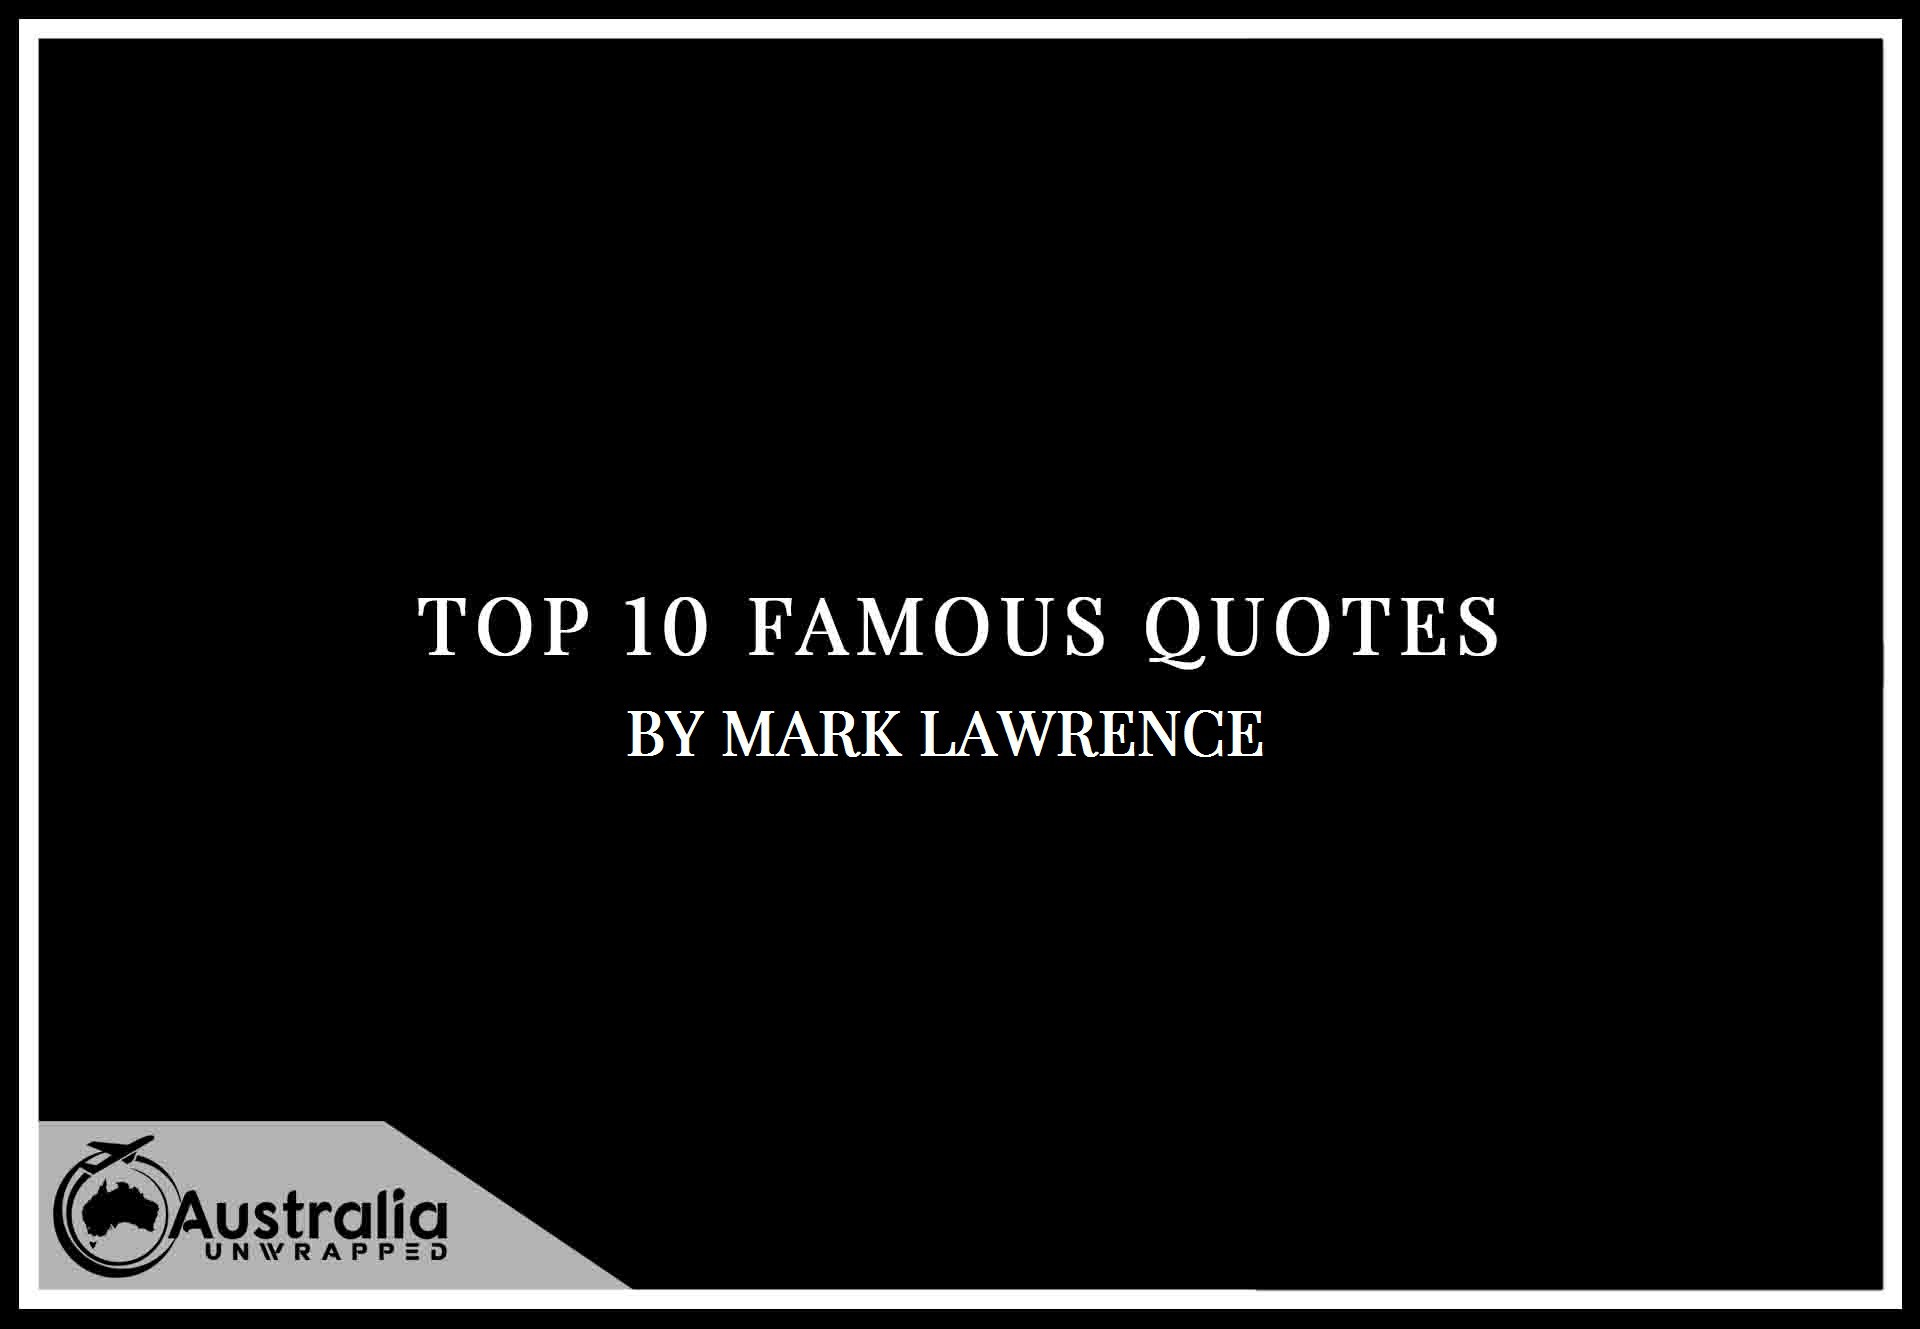 Mark Lawrence's Top 10 Popular and Famous Quotes